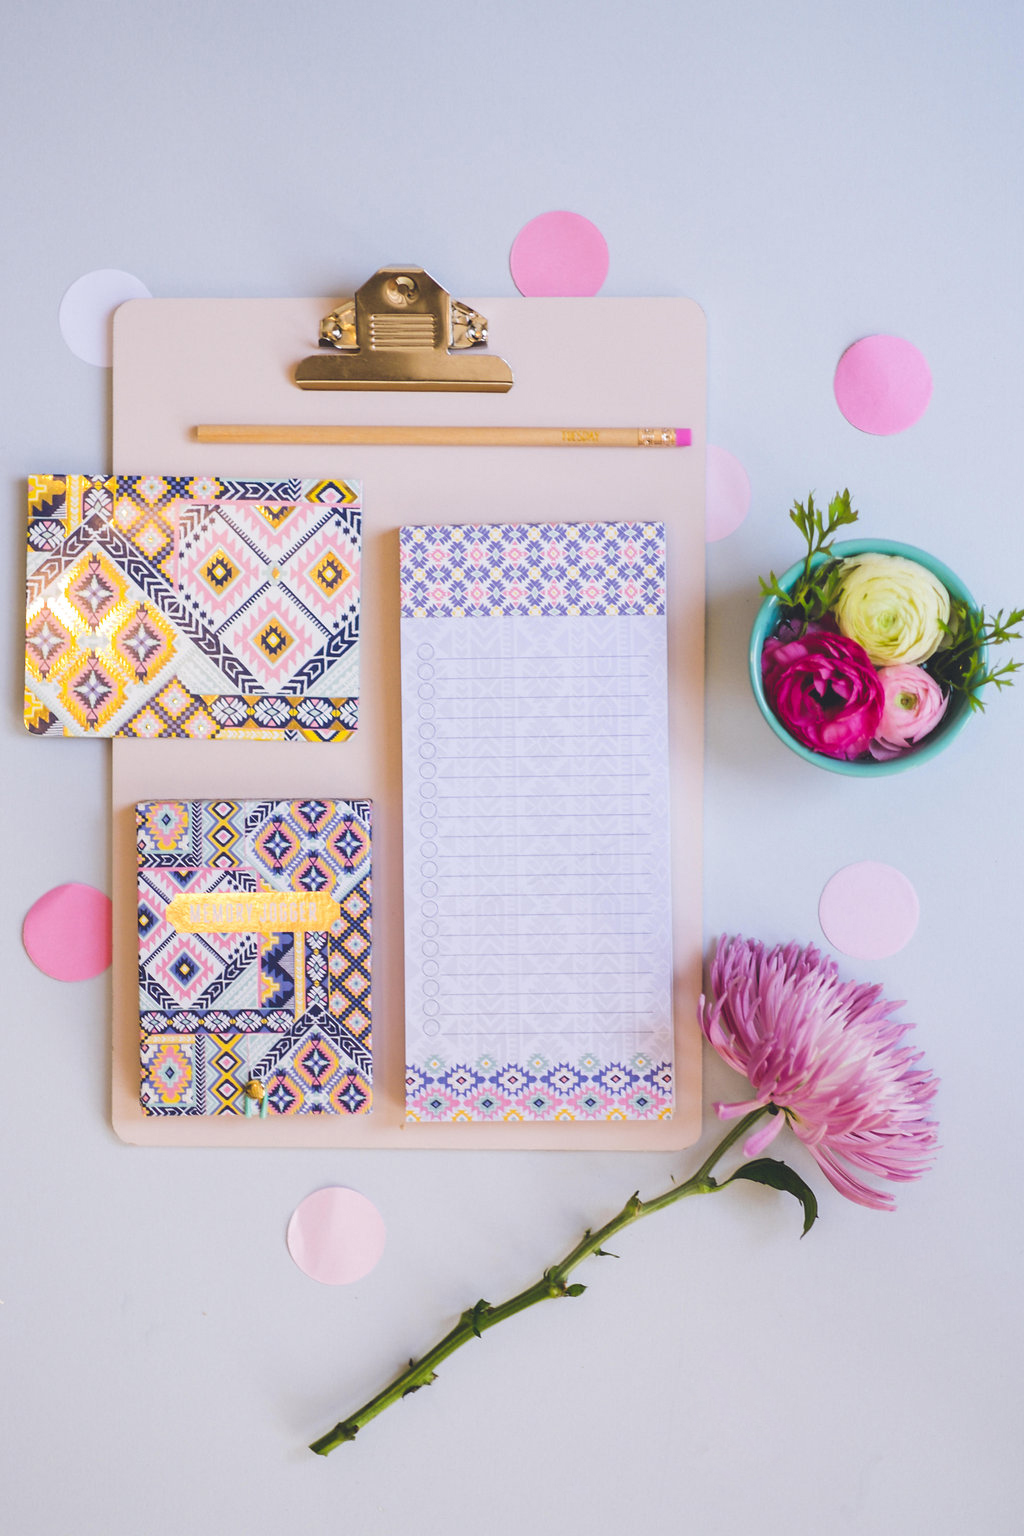 """Stationery items in my """"Dream Catcher"""" patterns. Navajo designs in soft, feminine colors with gleaming gold foil!"""